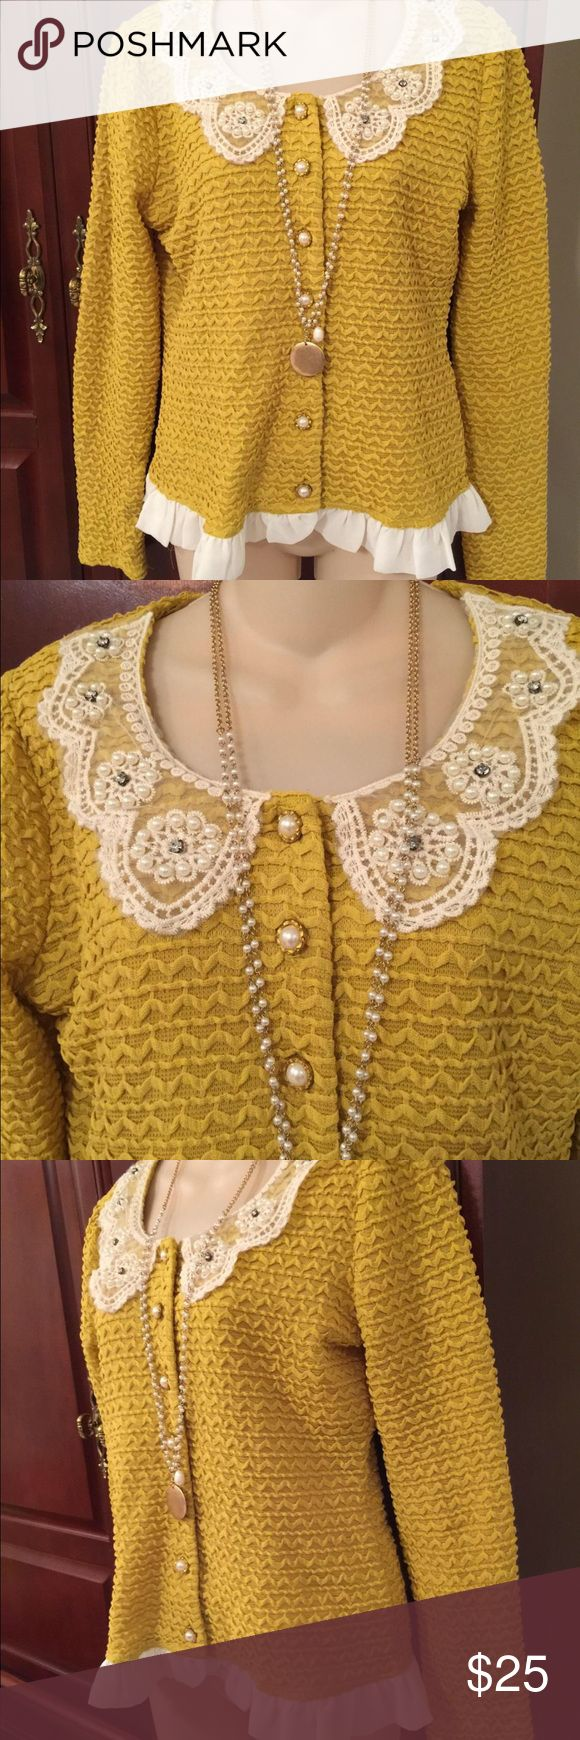 Gorgeous cardigan sweater size large beautiful gold cardigan with lace and Pearl accents. So pretty!  Would look great with jeans and boots. It's in like new condition. It comes from a pet and smoke free home. Necklace not included. Areve Sweaters Cardigans